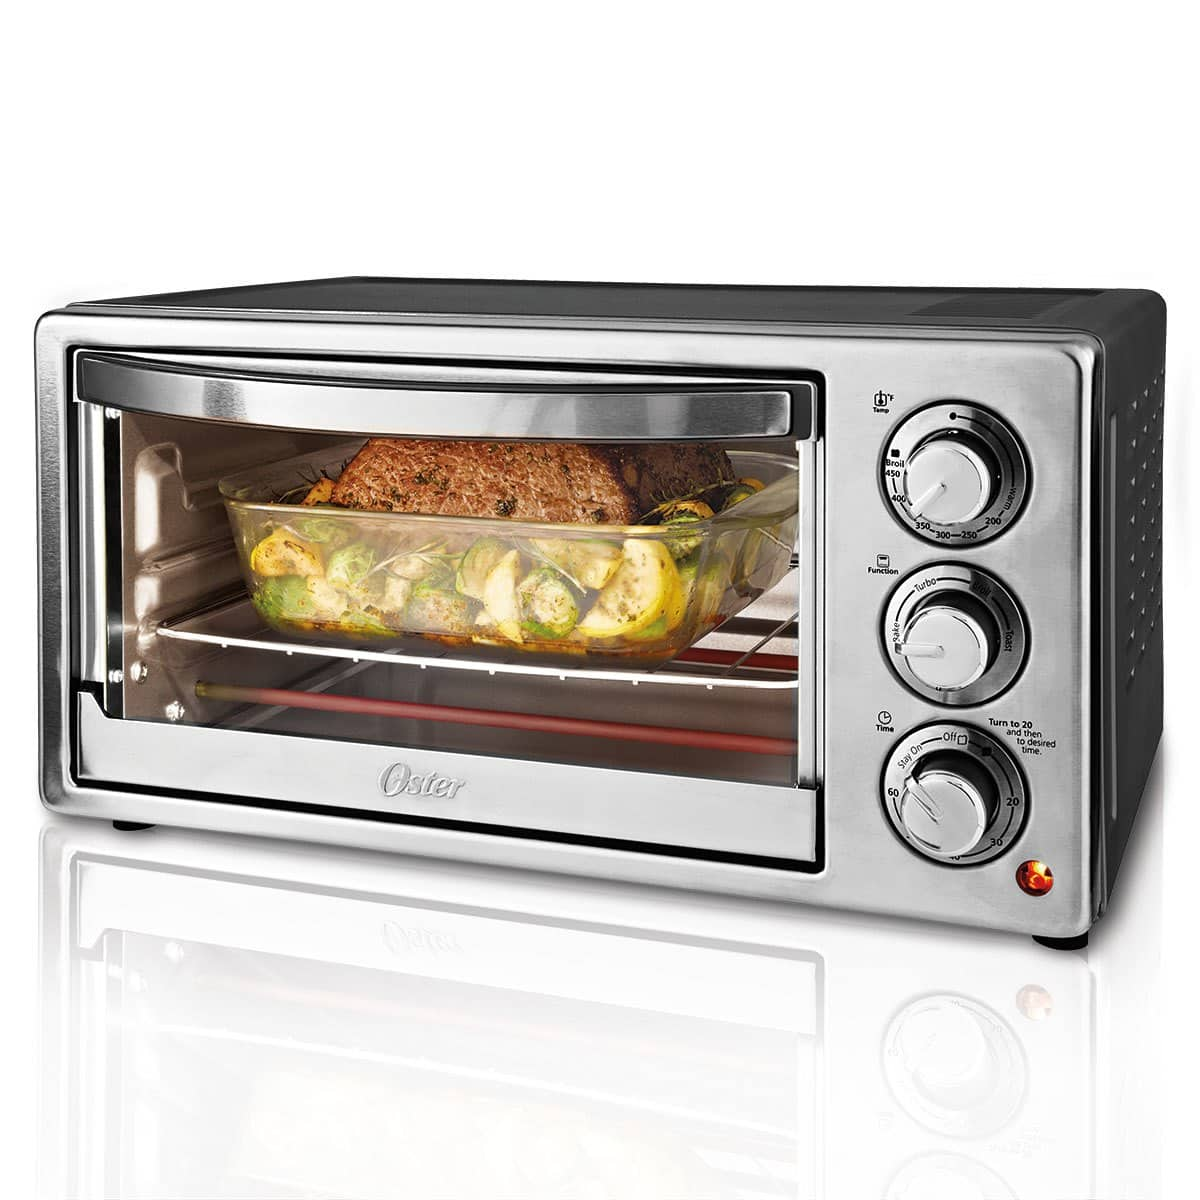 Oster 6-Slice Convection Toaster Oven $30 + Free Shipping via Rakuten